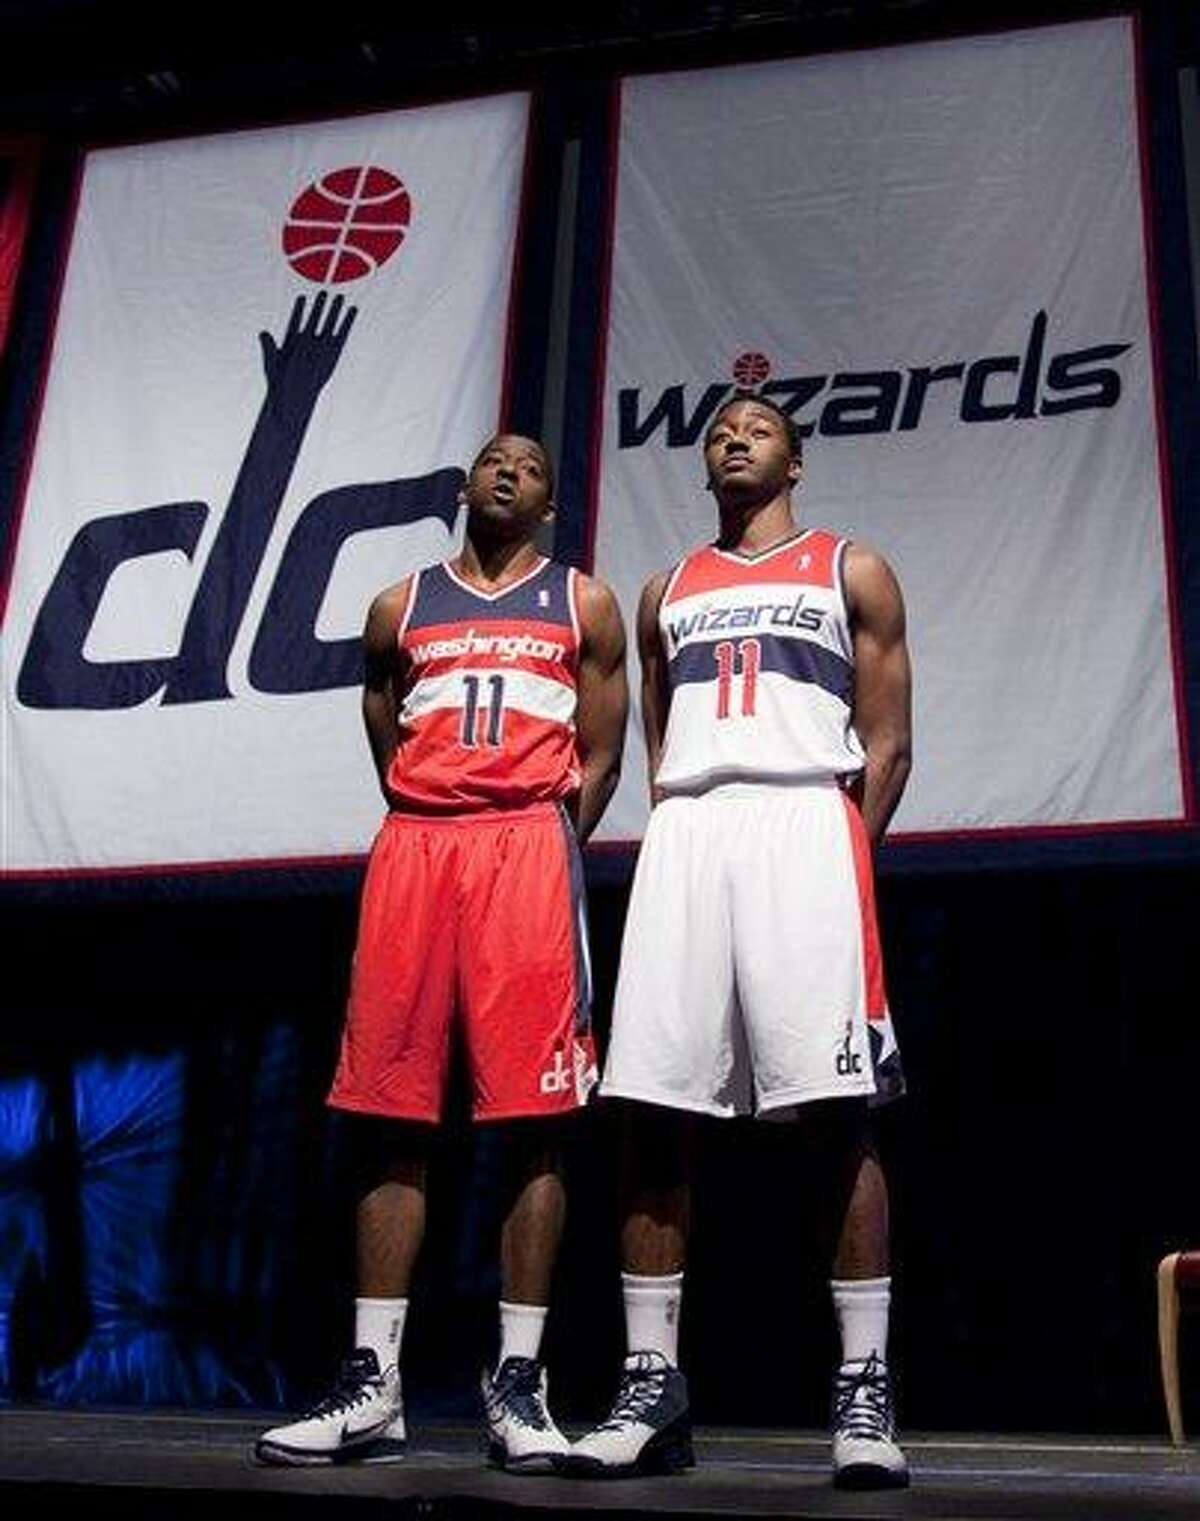 Washington Wizards basketball players Jordan Crawford, left, and John Wall show off the Wizards new uniforms on Tuesday, May 10, 2011, in Washington. (AP Photo/Evan Vucci)